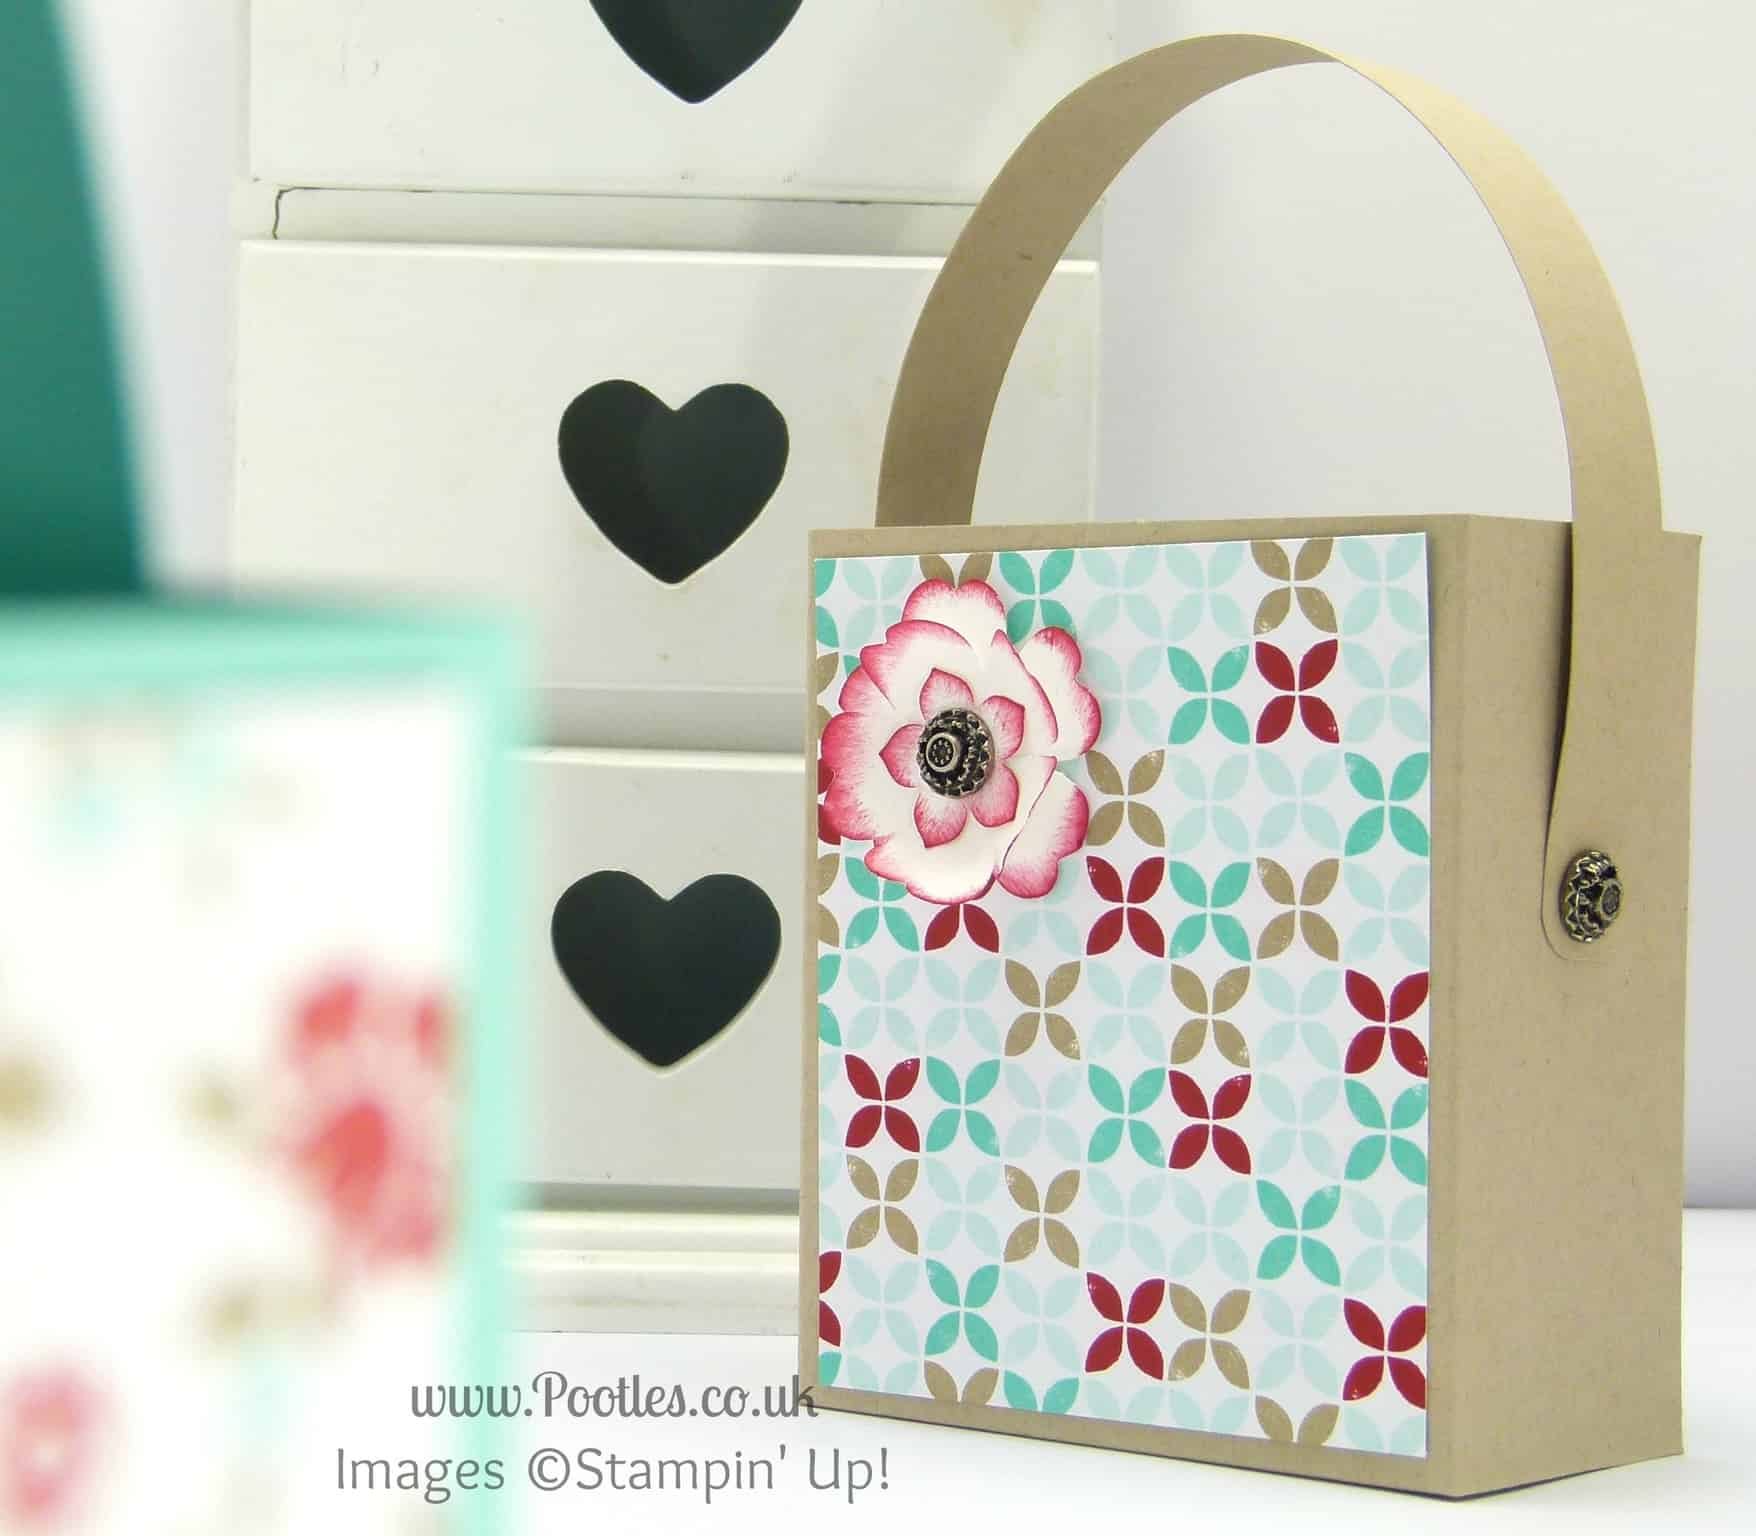 Stampin' Up! UK Independent Demonstrator Pootles - Hinged Handled Pretty Bag Tutorial Retro Crumb Cake Version